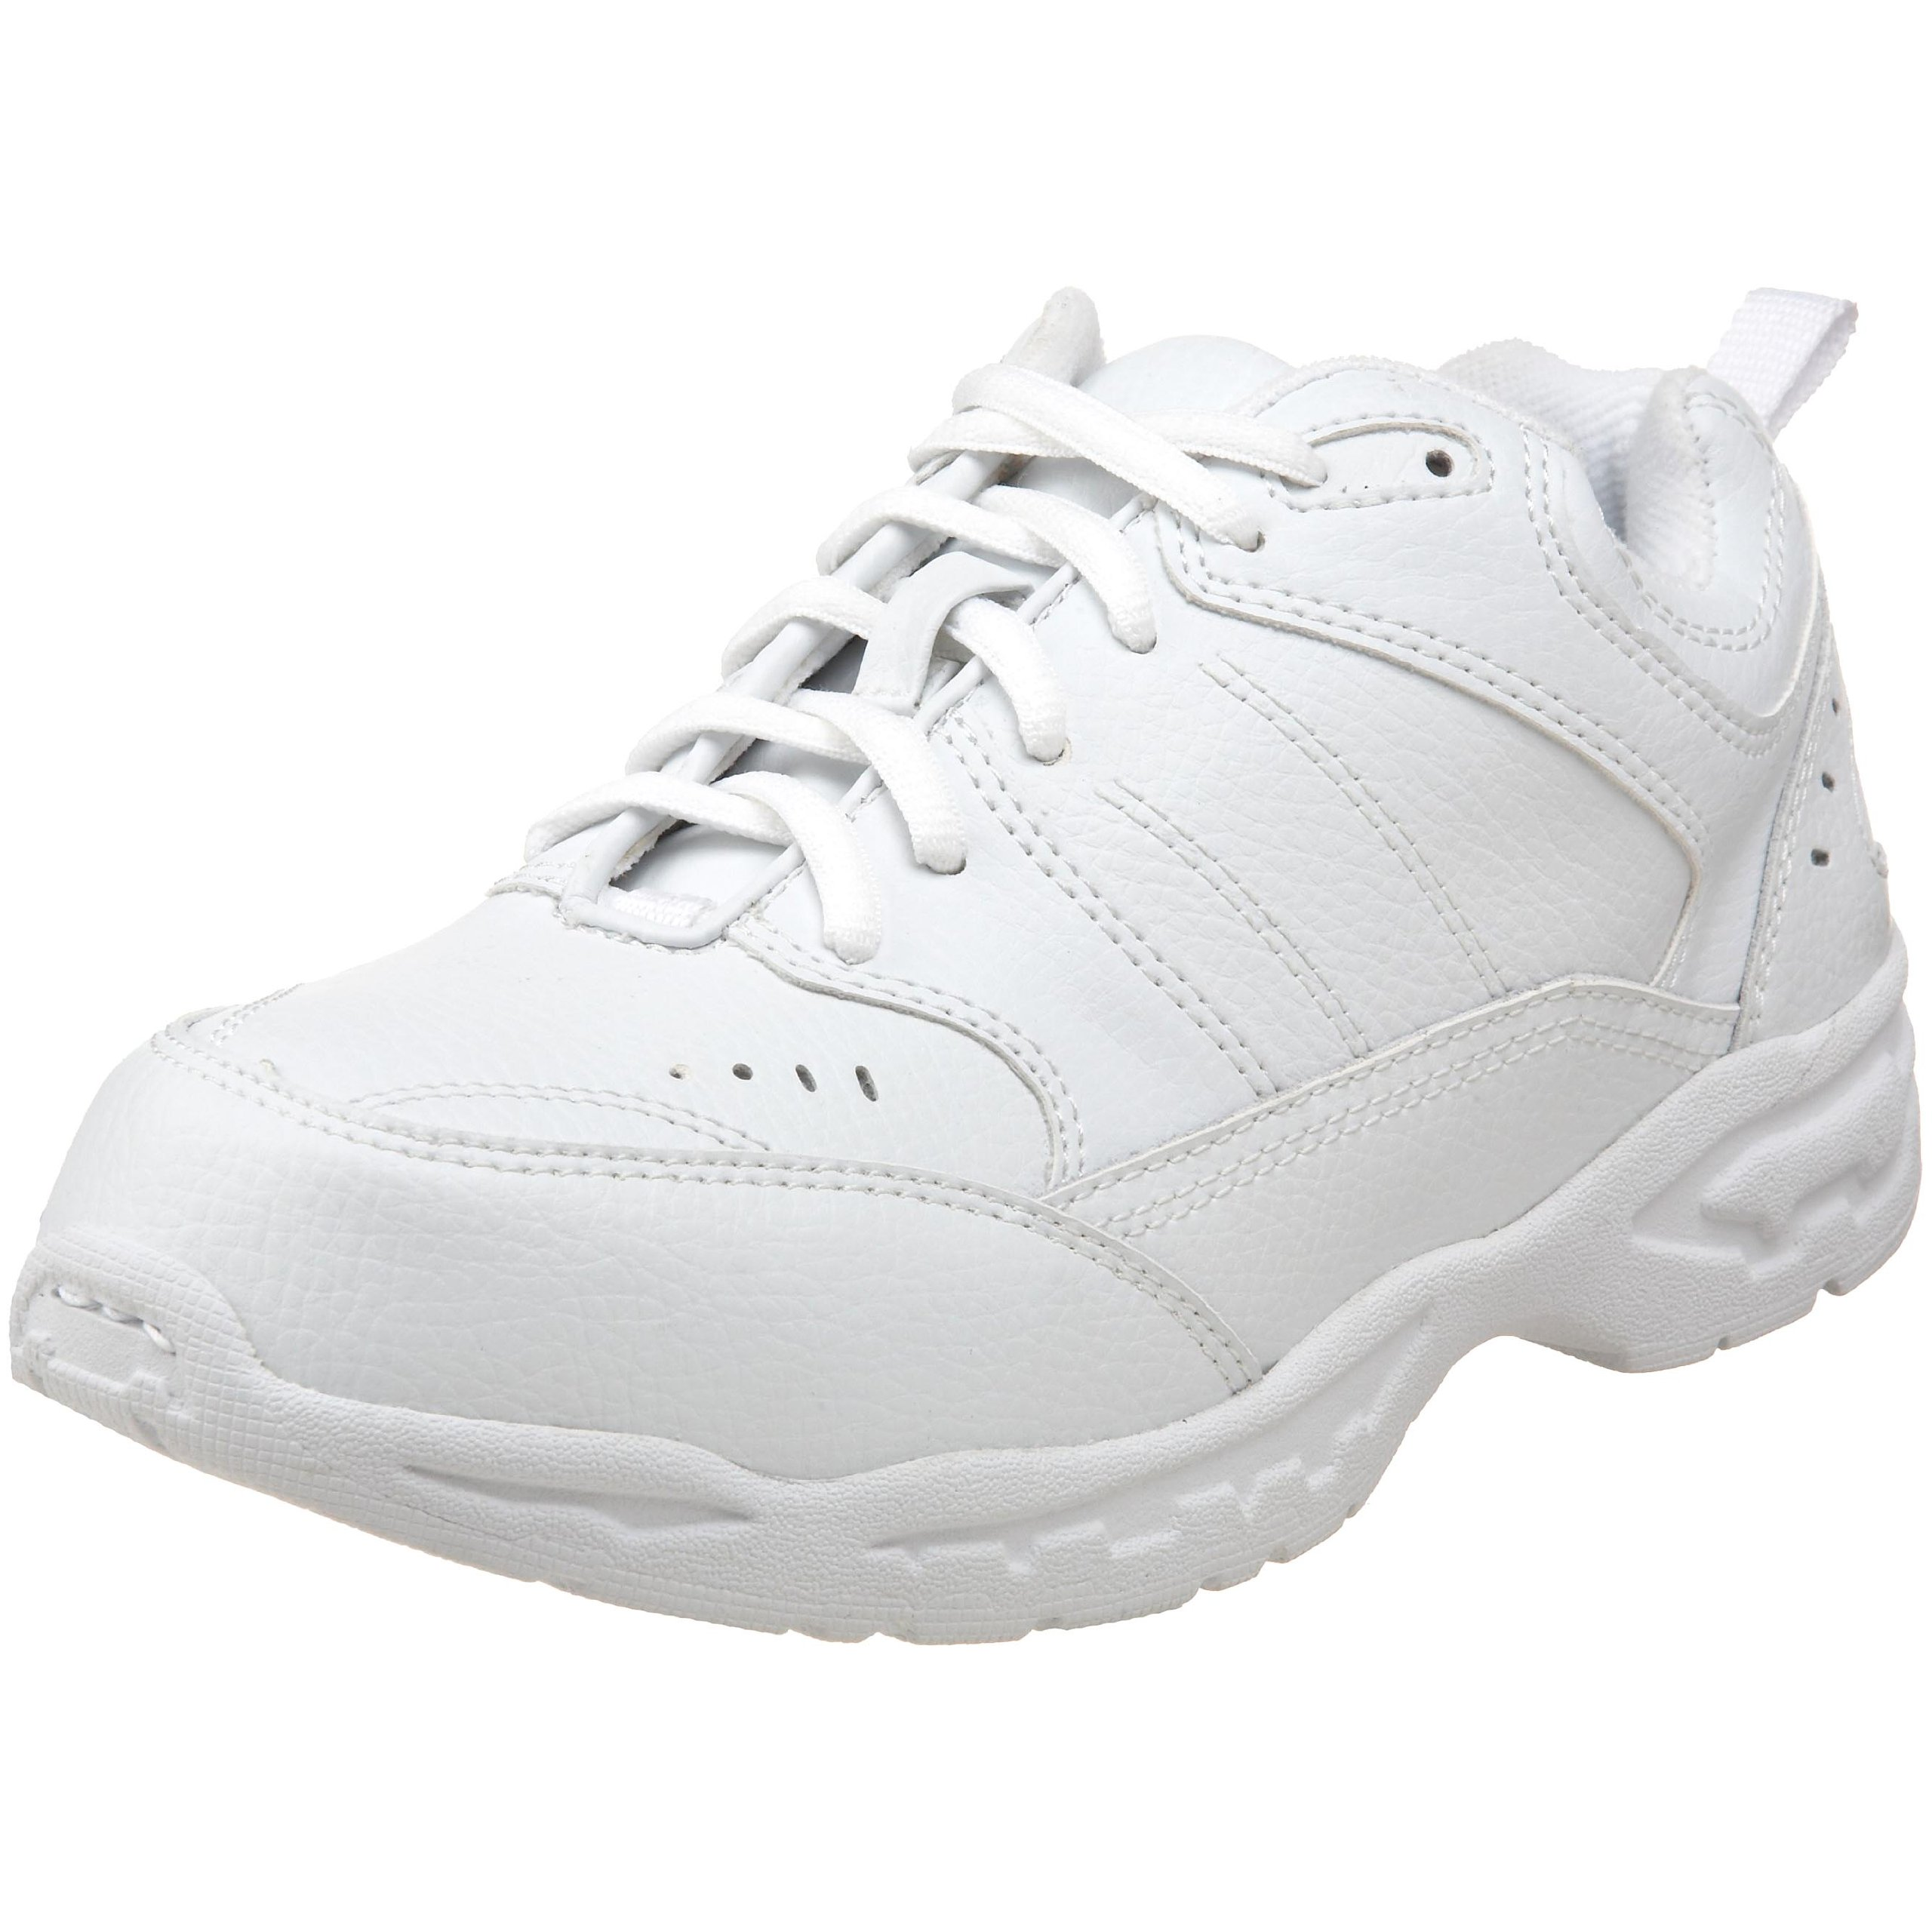 School Issue 3200 Lace Up Athletic Shoe (Toddler/Little Kid/Big Kid),White,11 M US Little Kid